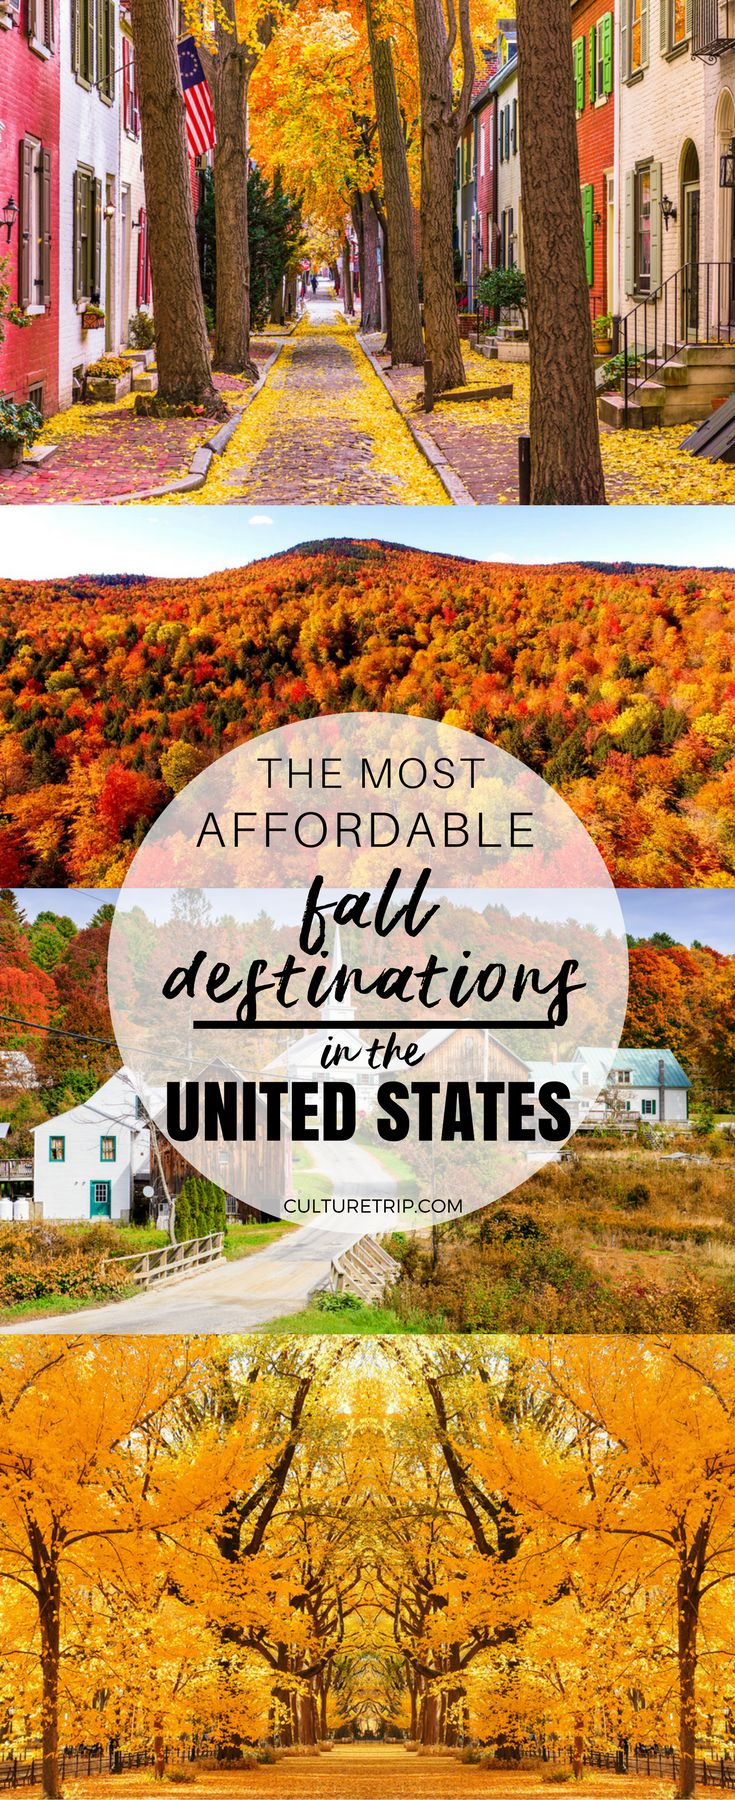 The Most Affordable Fall Vacation Destinations in the United States|Pinterest: theculturetrip